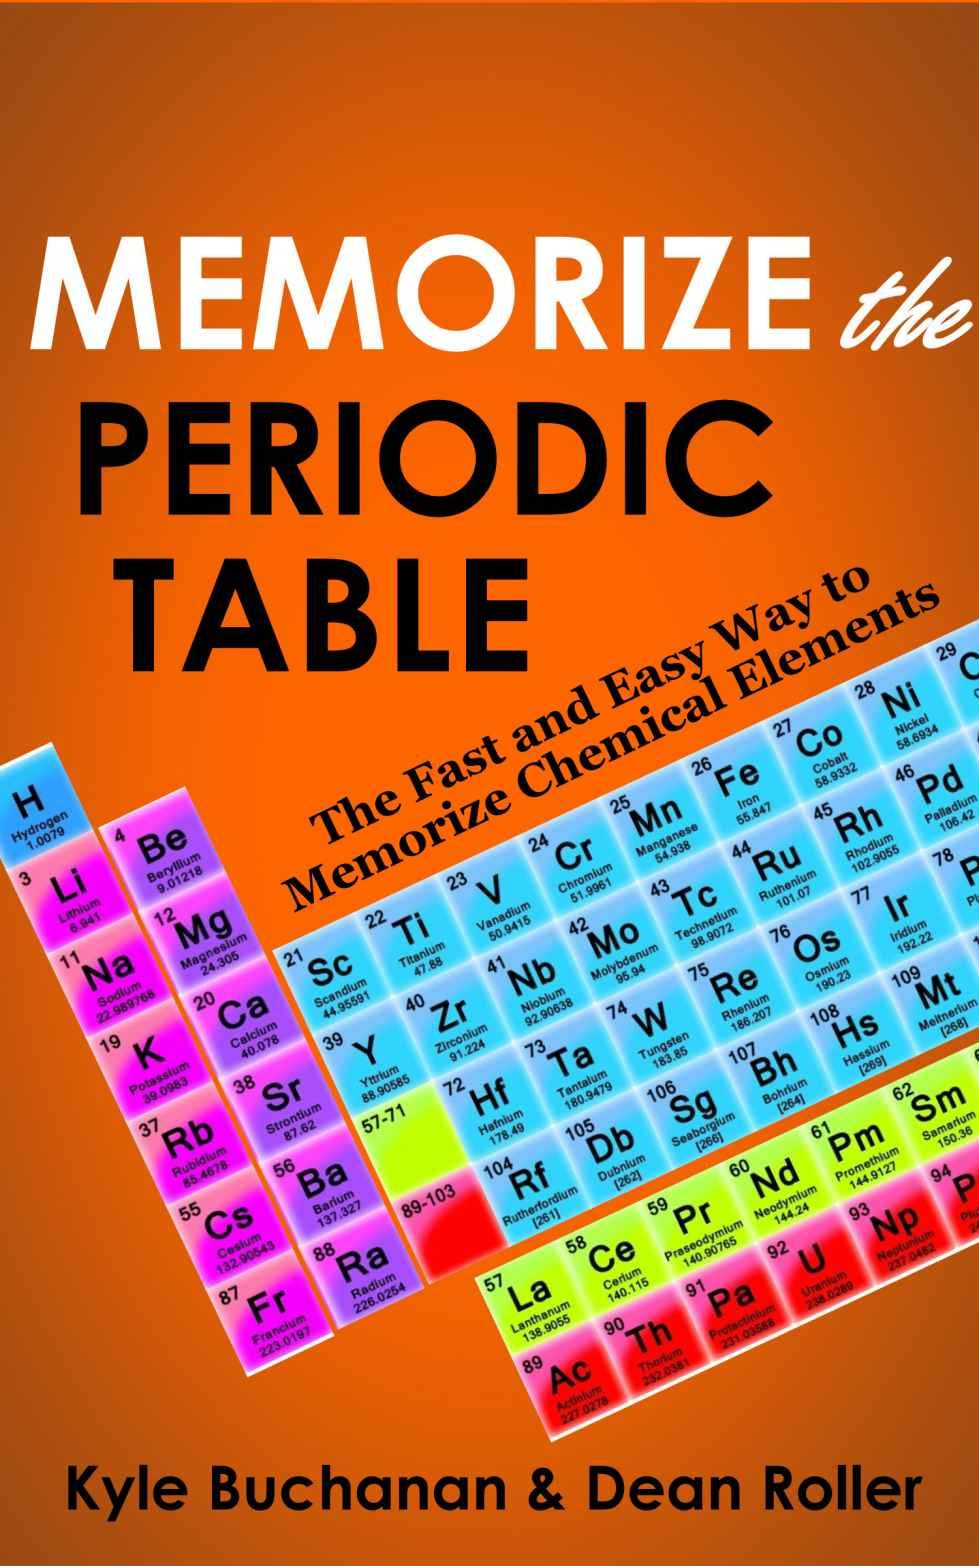 Easy way to memorize periodic table of elements choice image memorize the periodic table the fast and easy way to memorize memorize the periodic table the gamestrikefo Choice Image